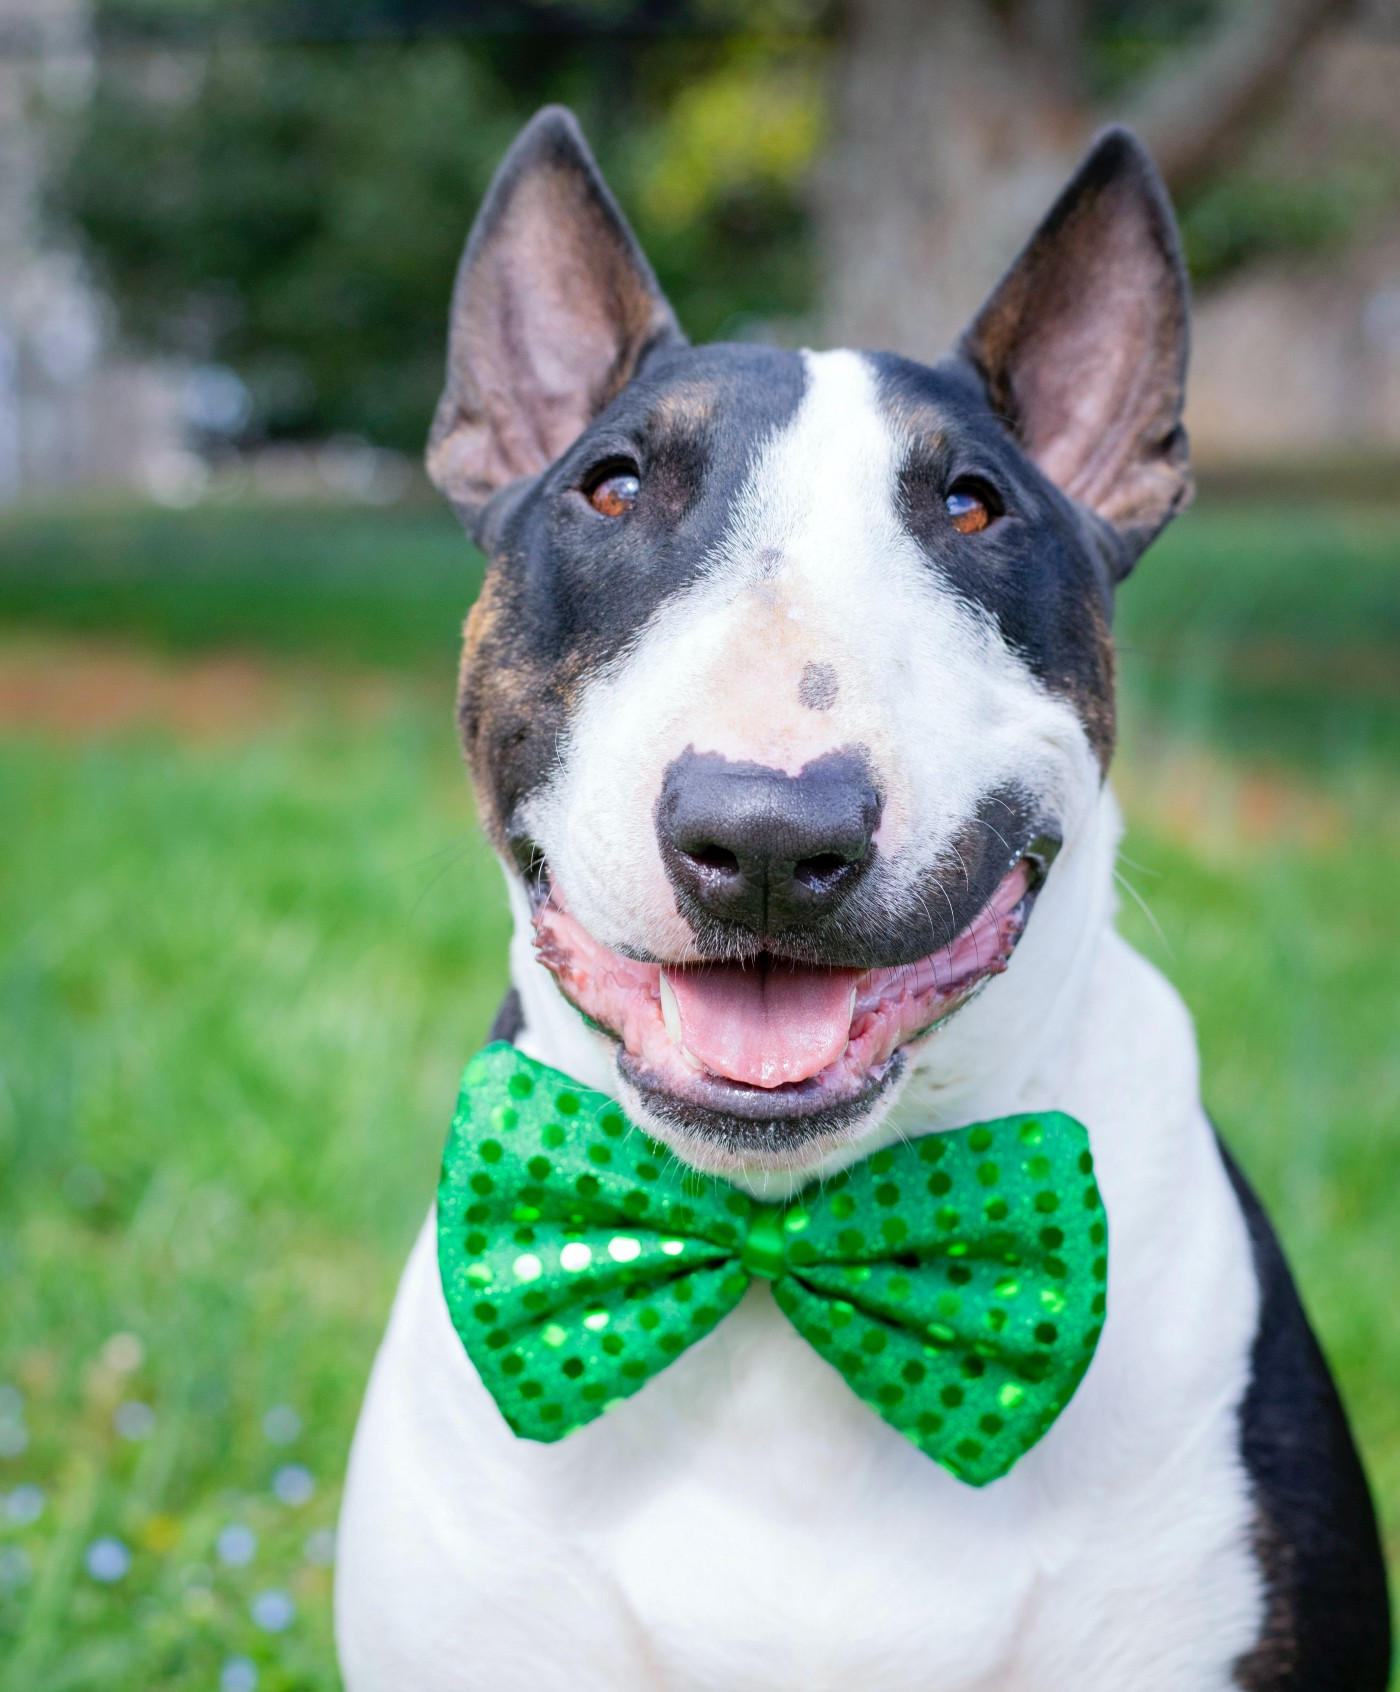 dog wearing green bowtie while smiling